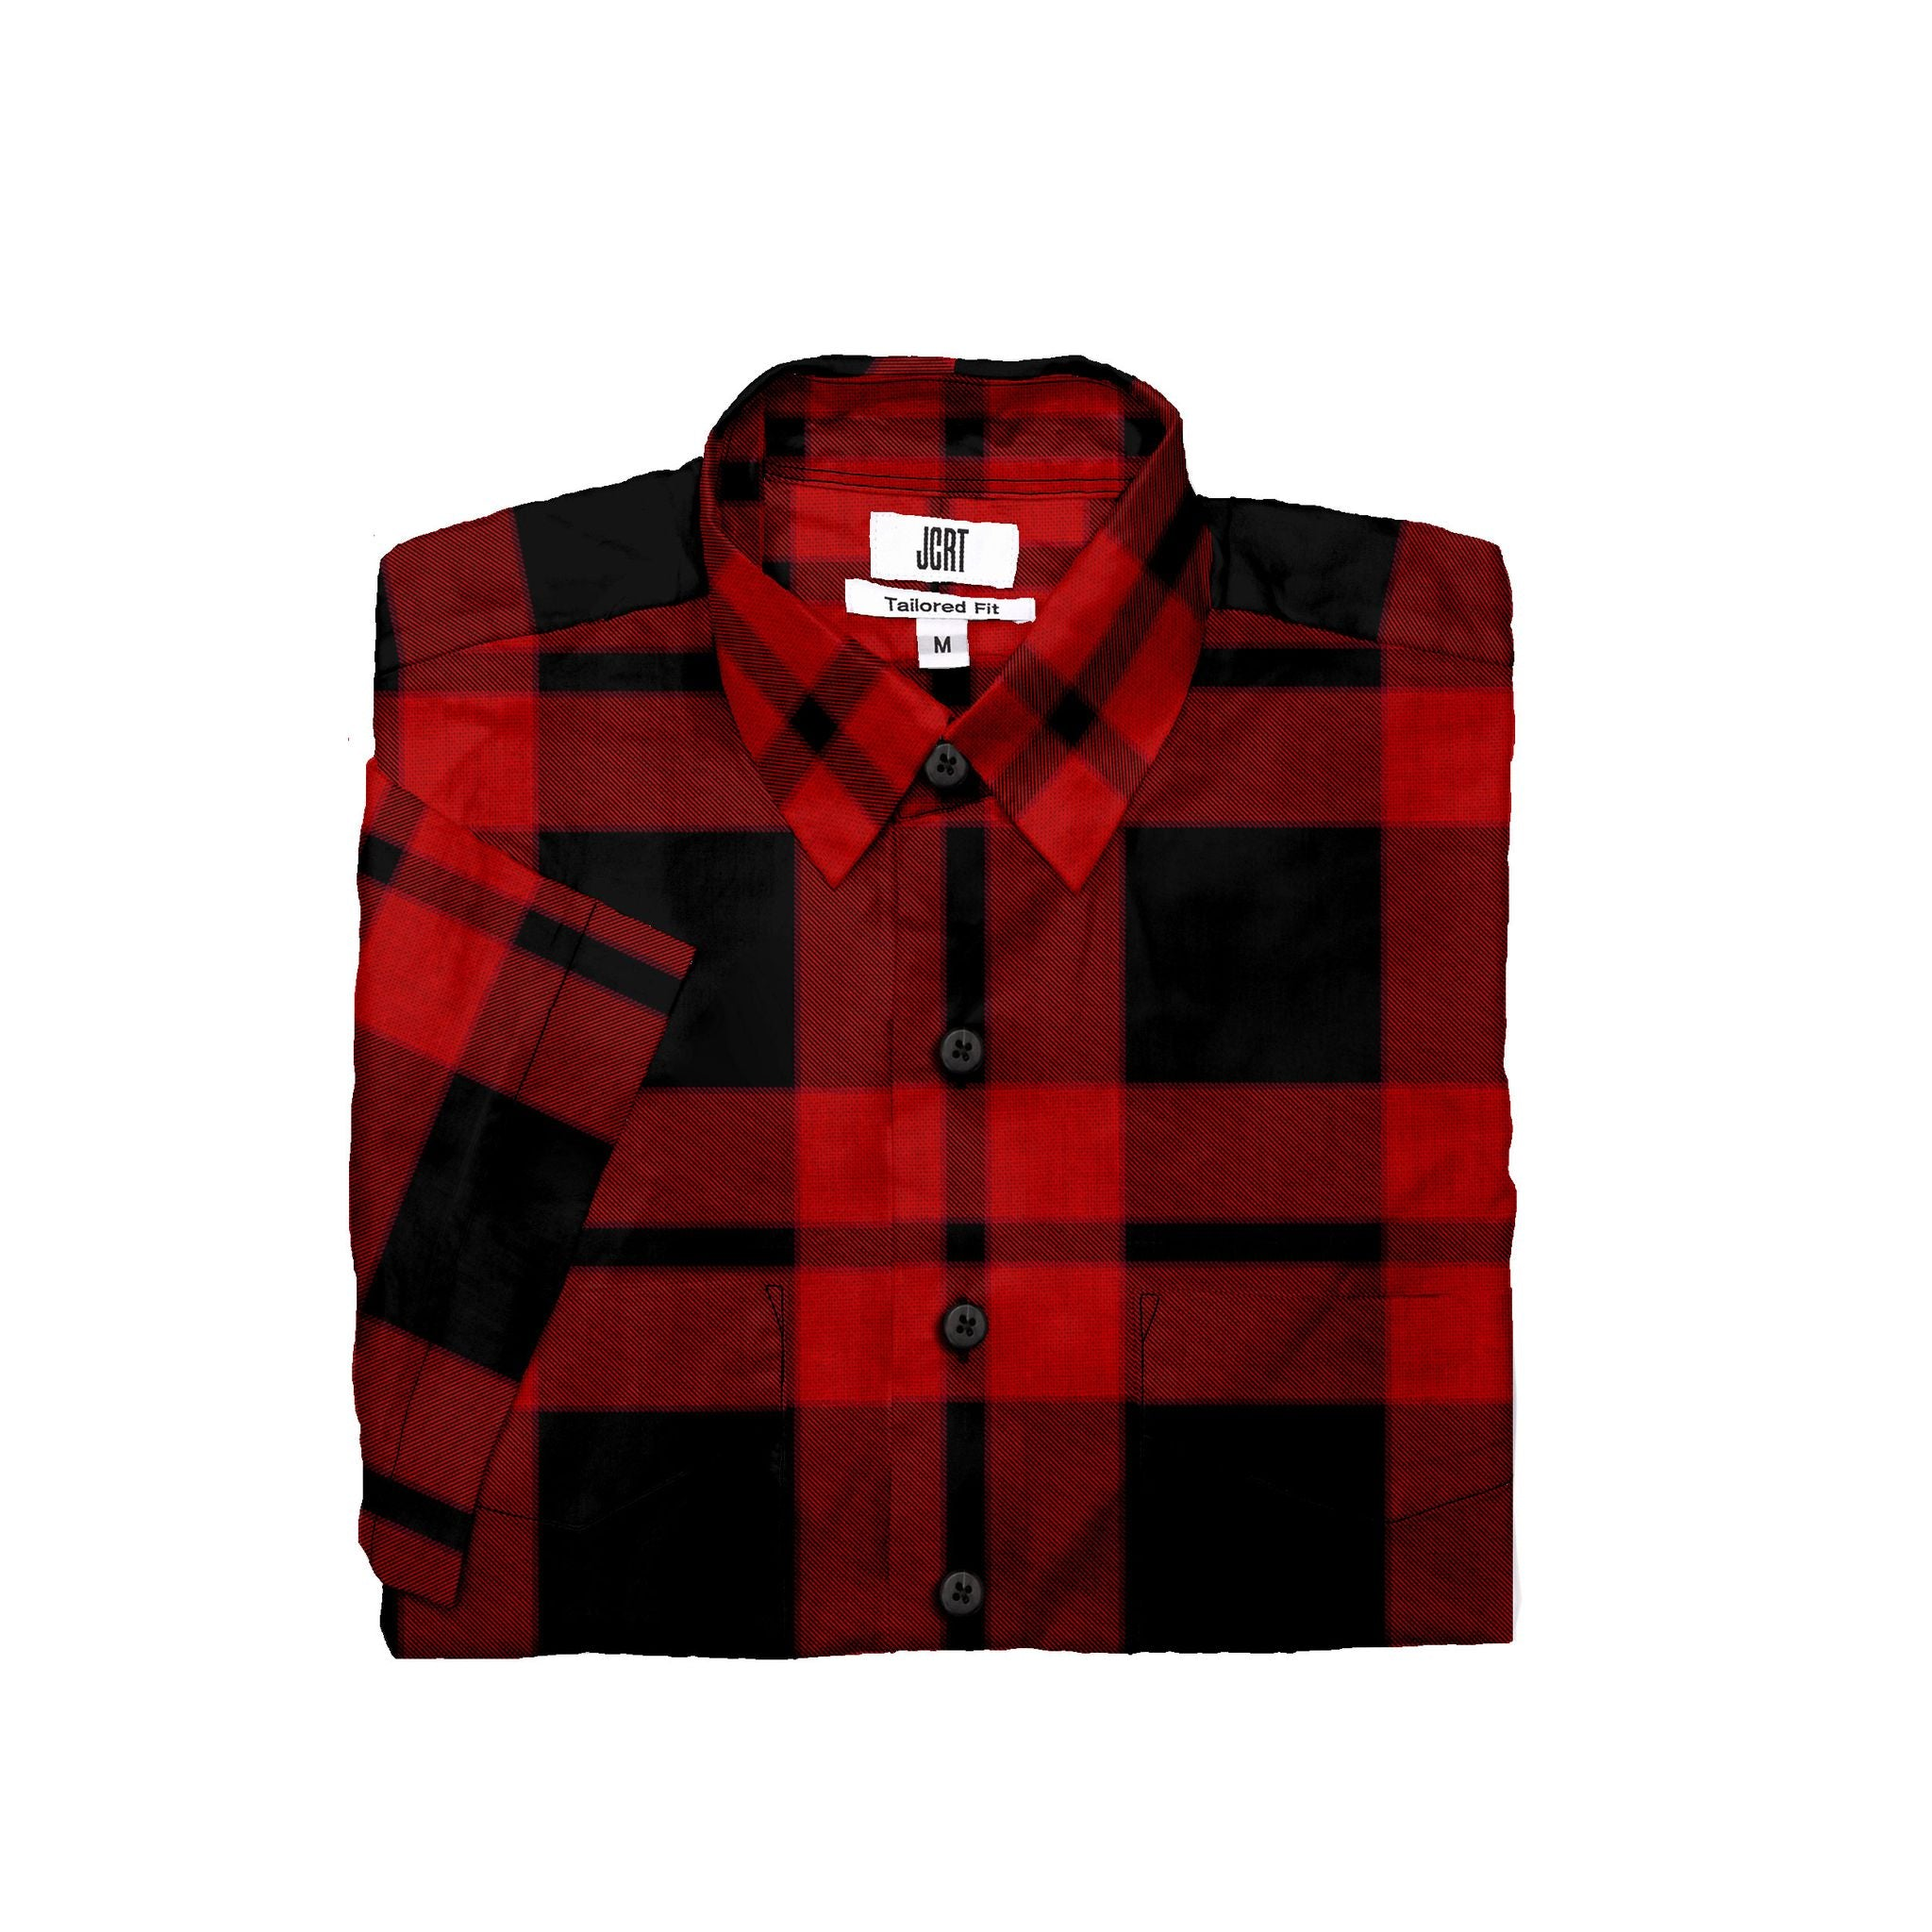 The Biggie Smalls Plaid Short Sleeve Shirt